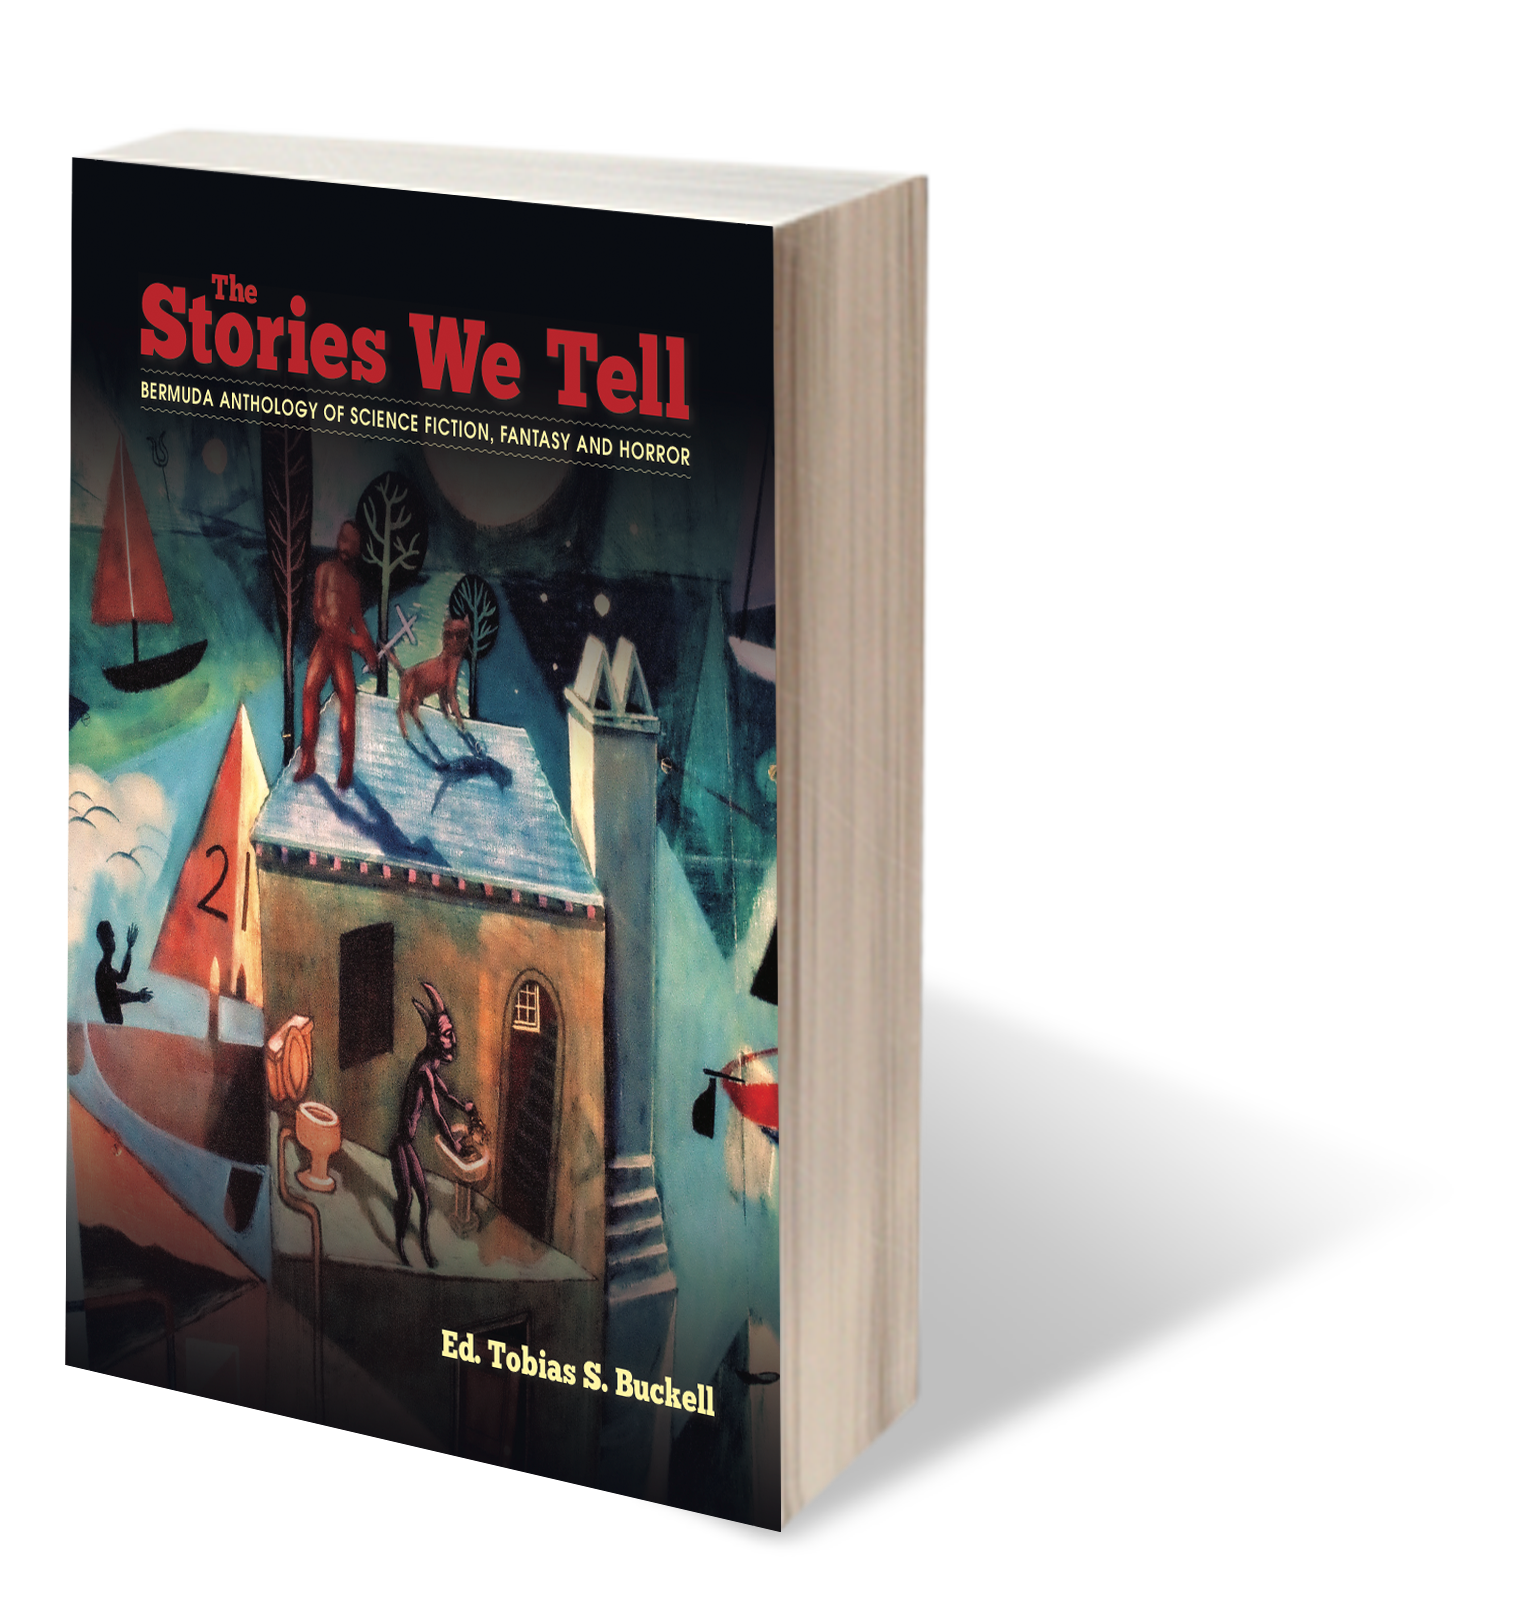 The Stories we tell: Anthology of science fiction, fantasy and horror - My speculative fiction short story